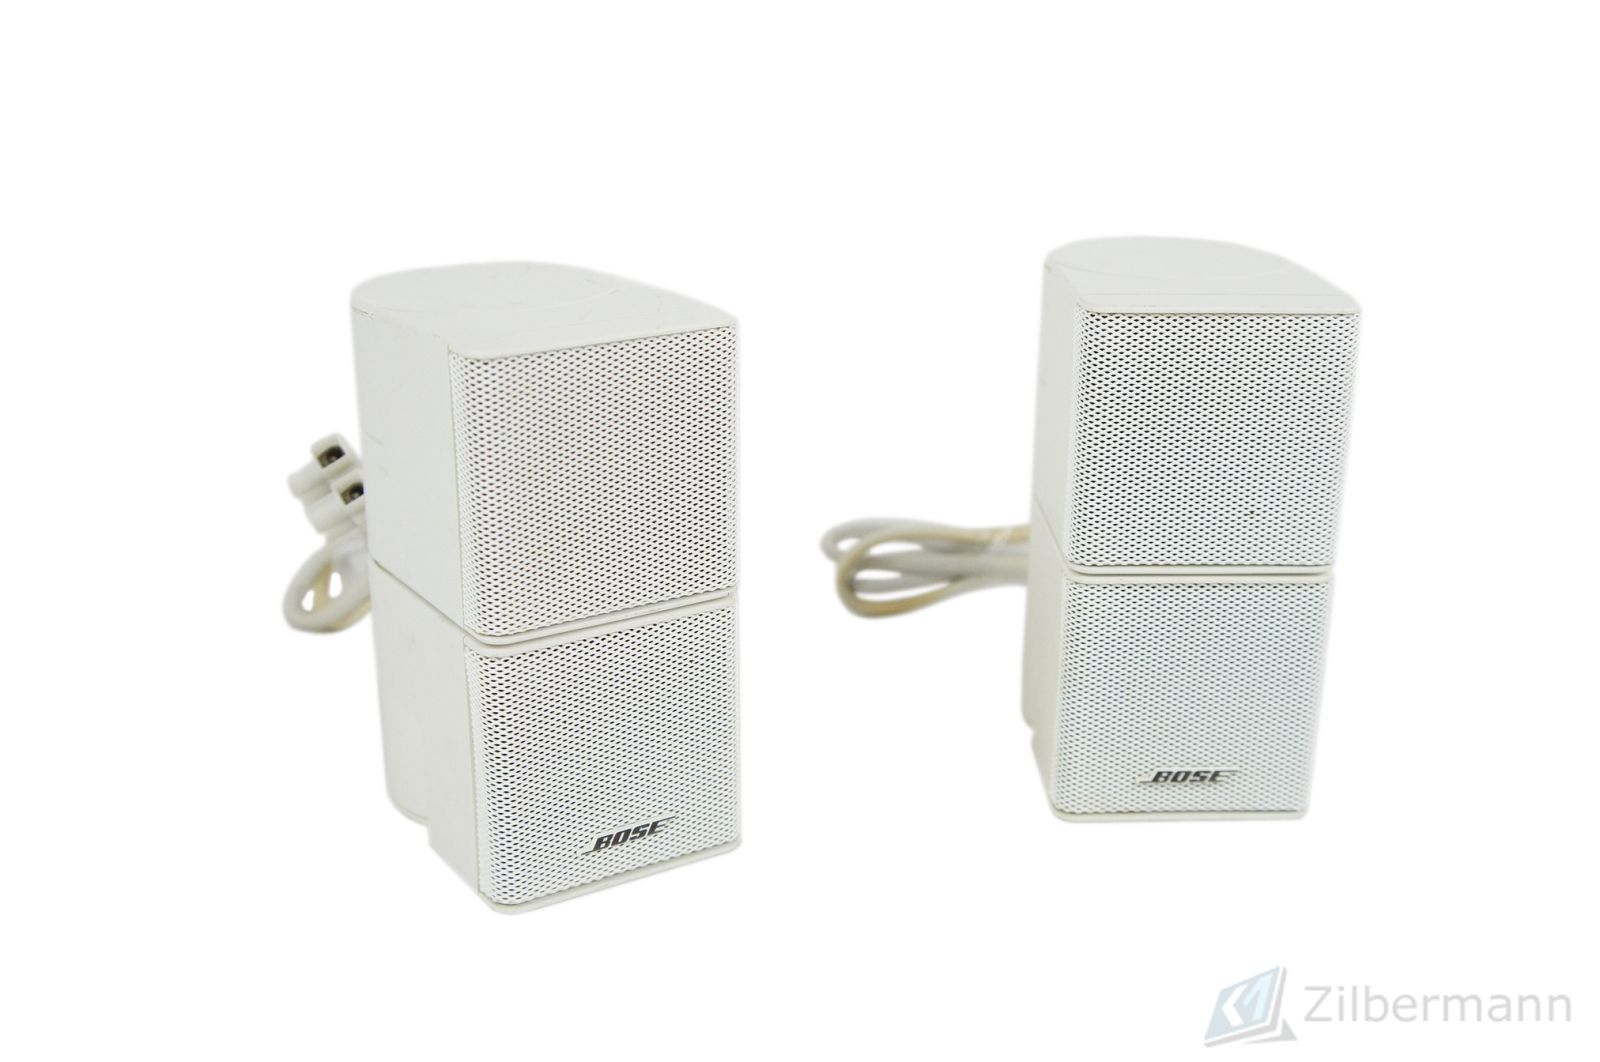 2x_Bose_Jewel_Cubes_Boxen_Satelliten_mit_Adapter_Weiss_02